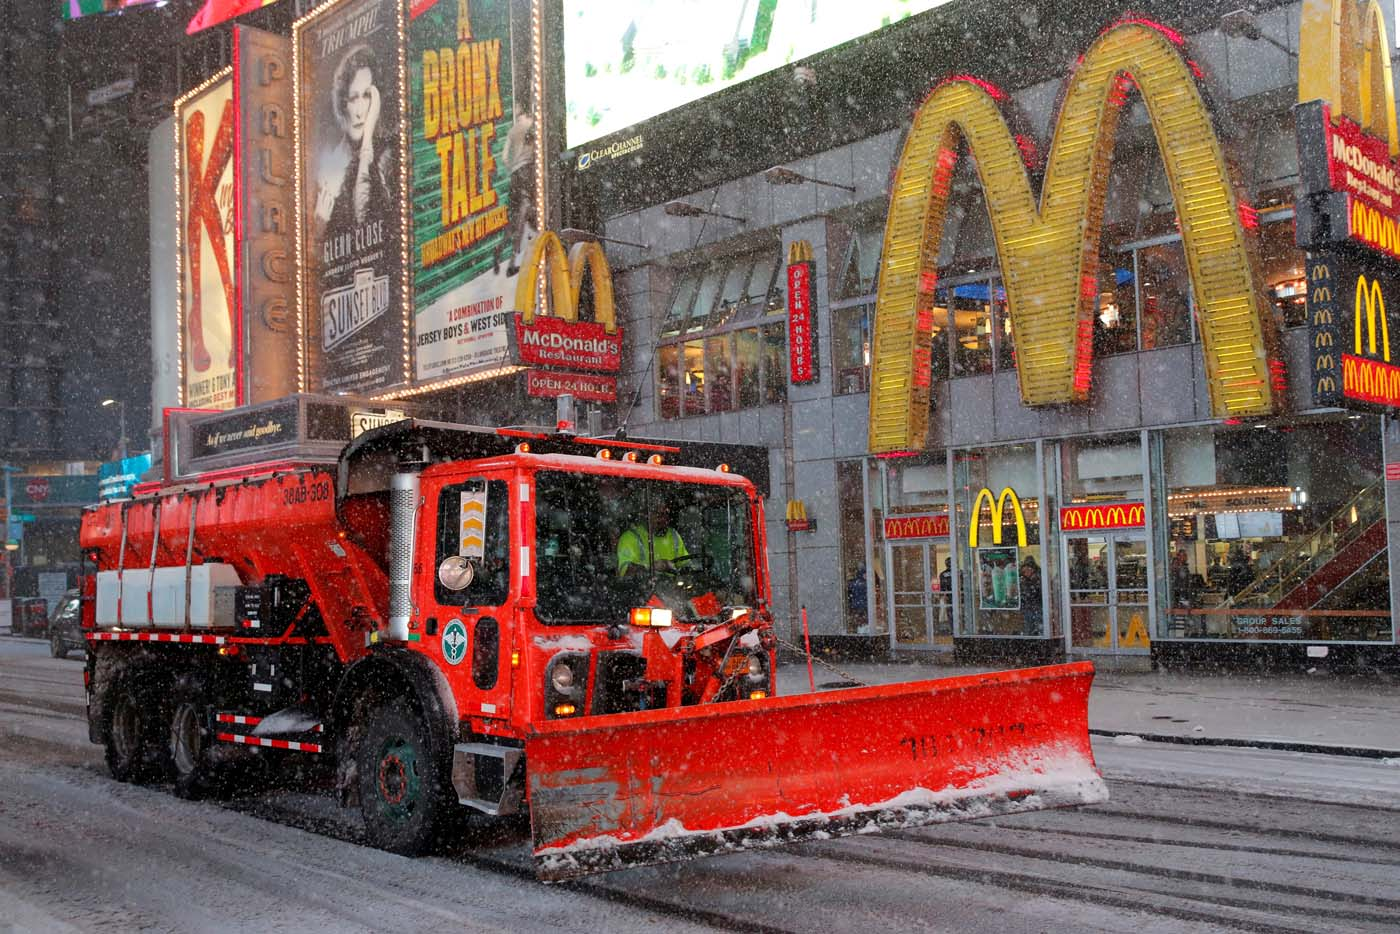 A snow plow drives through Times Square as snow falls in Manhattan, New York, U.S., March 14, 2017. REUTERS/Andrew Kelly